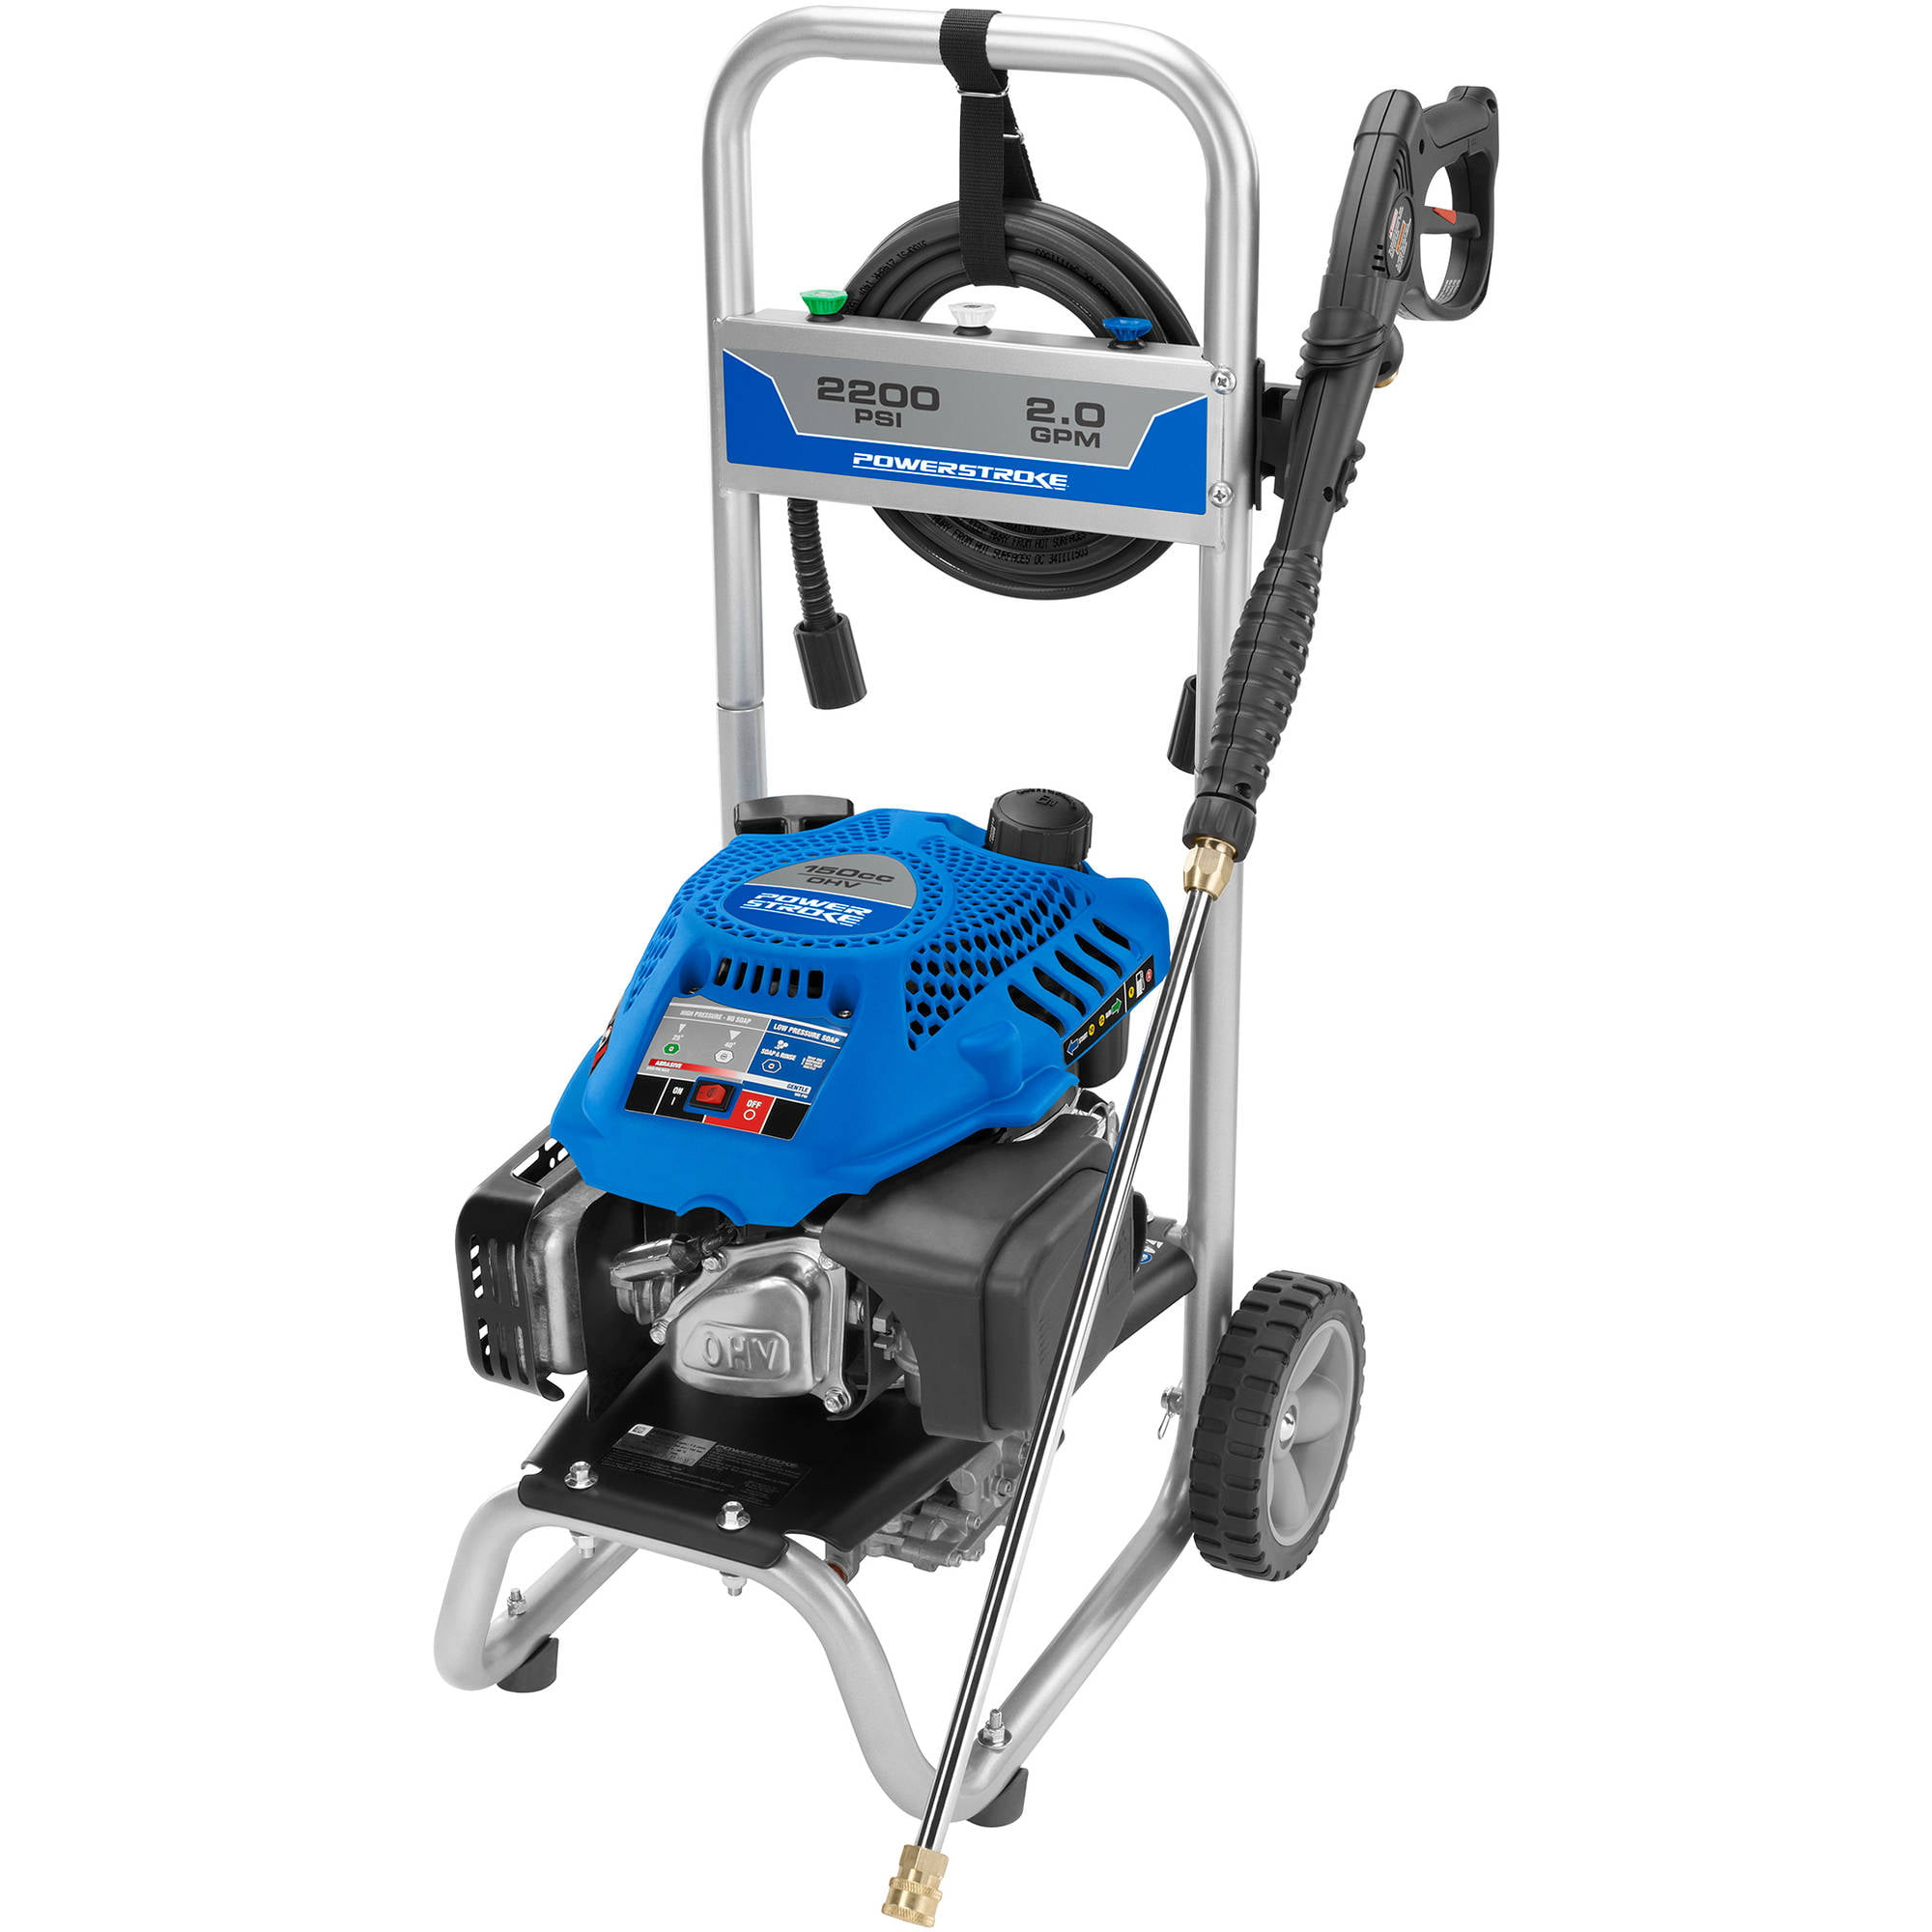 Powerstroke 2200 PSI Gas Pressure Washer by Homelite Consumer Products